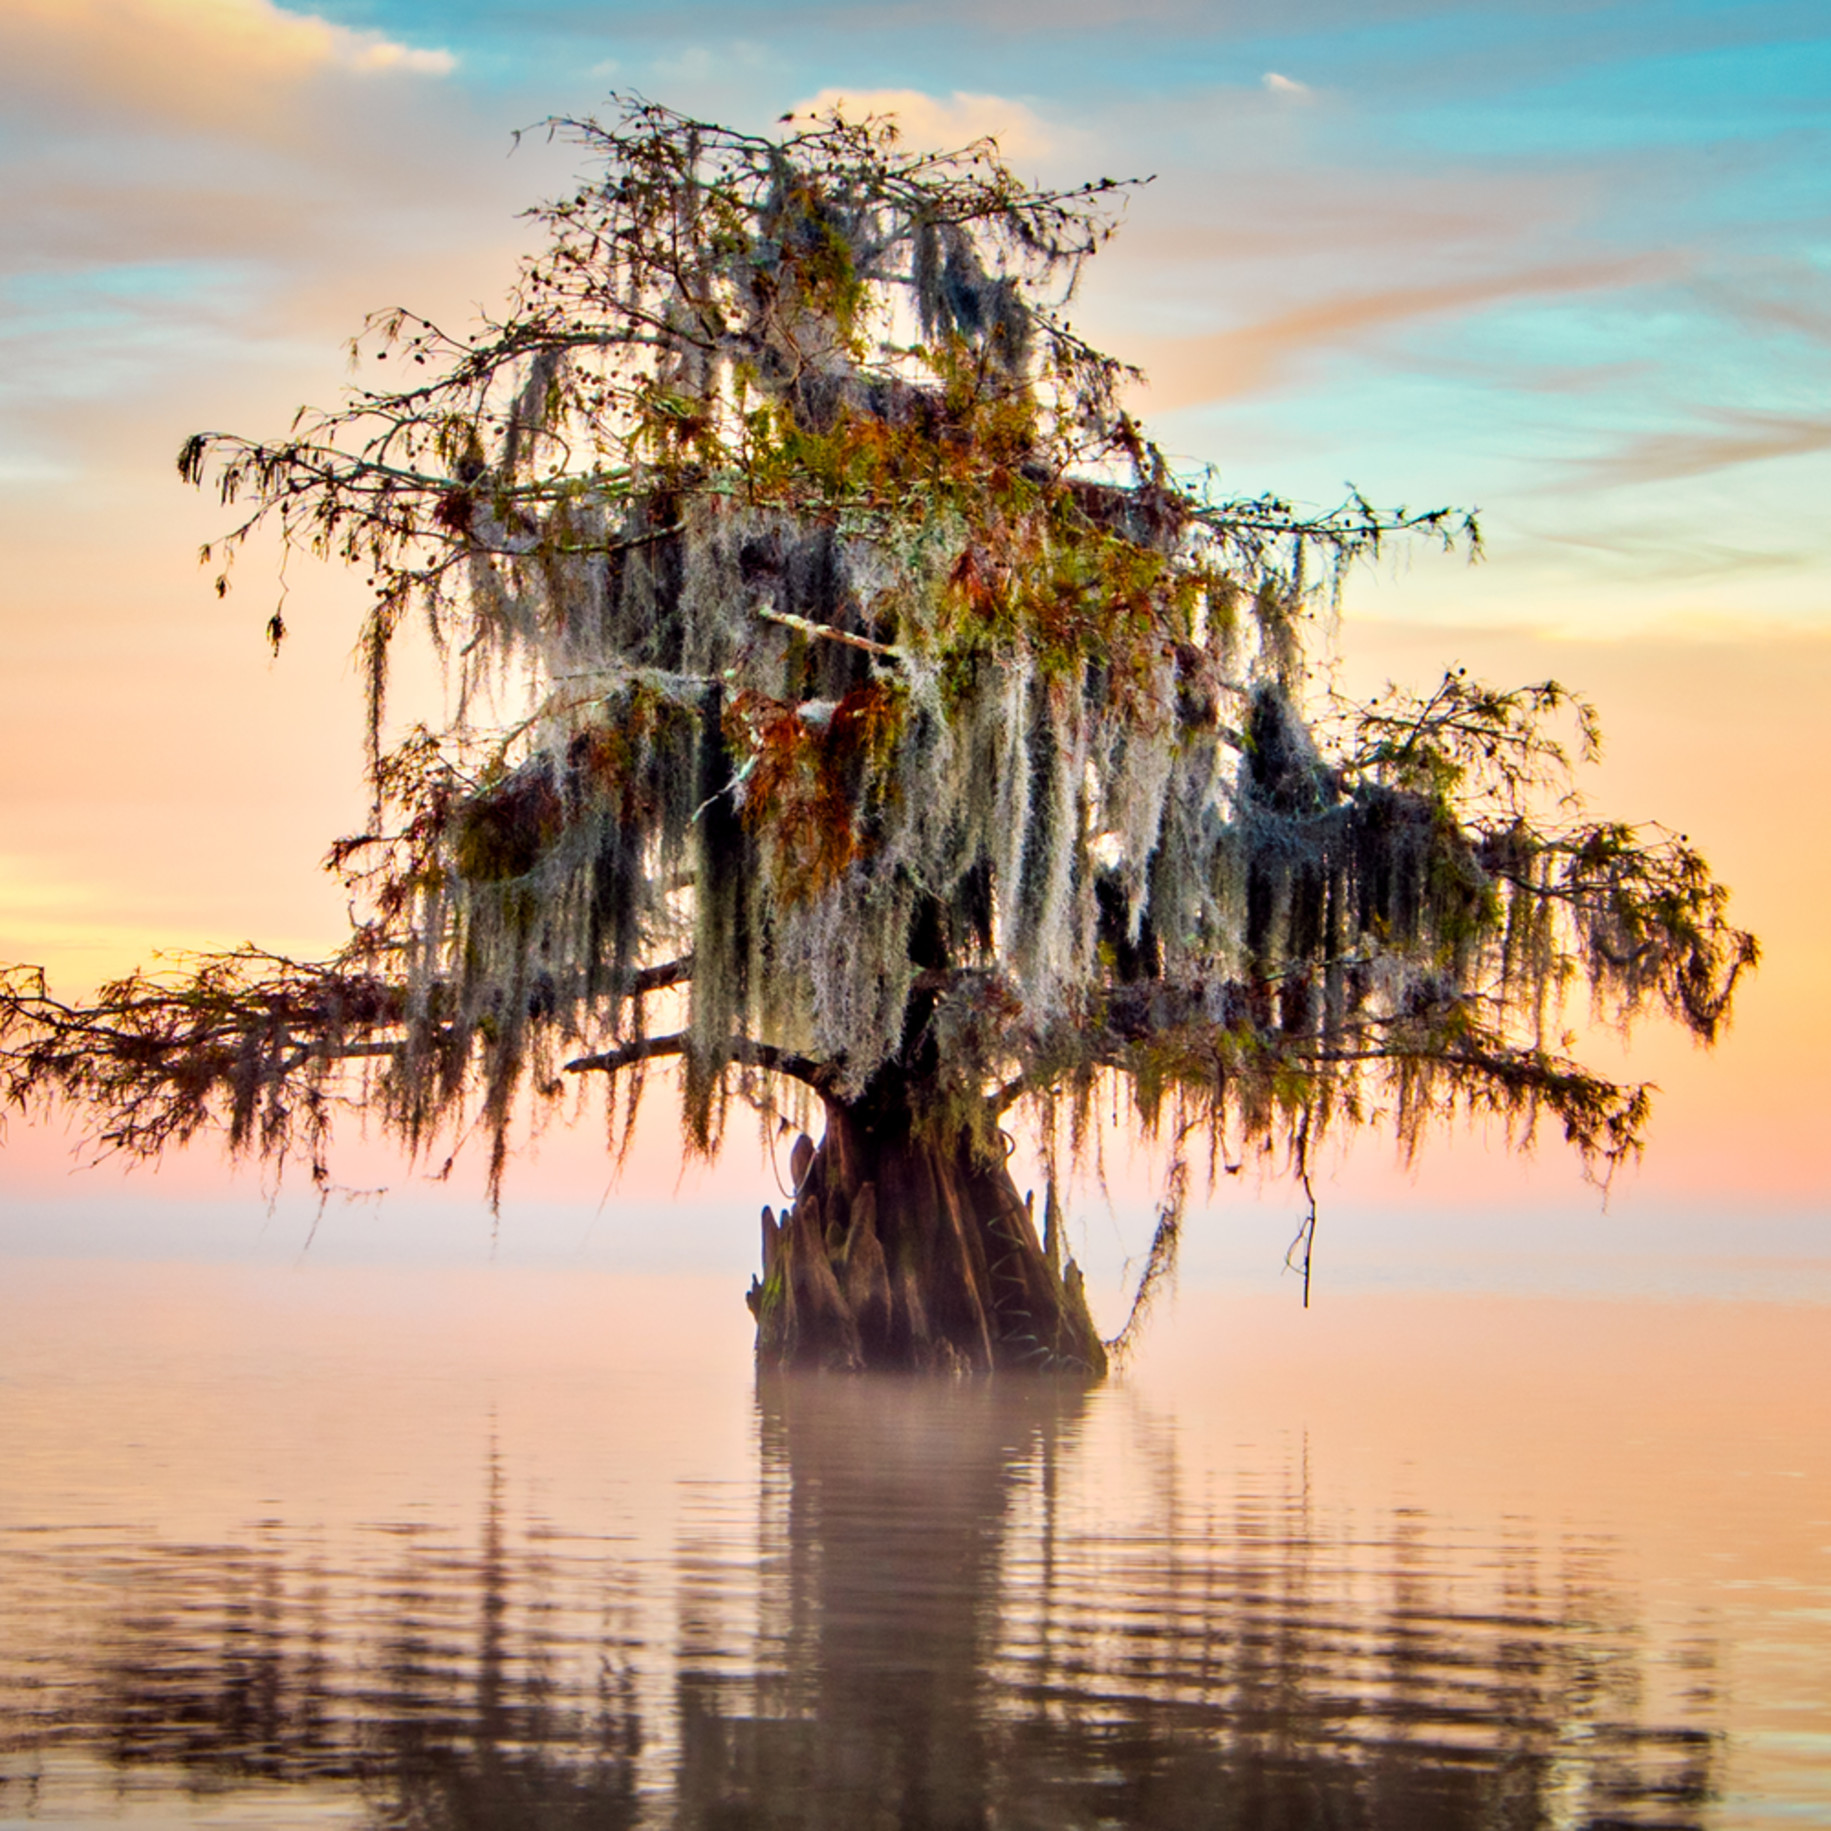 Andy crawford photography lake maurepas 20171125 020 edit nsivx3